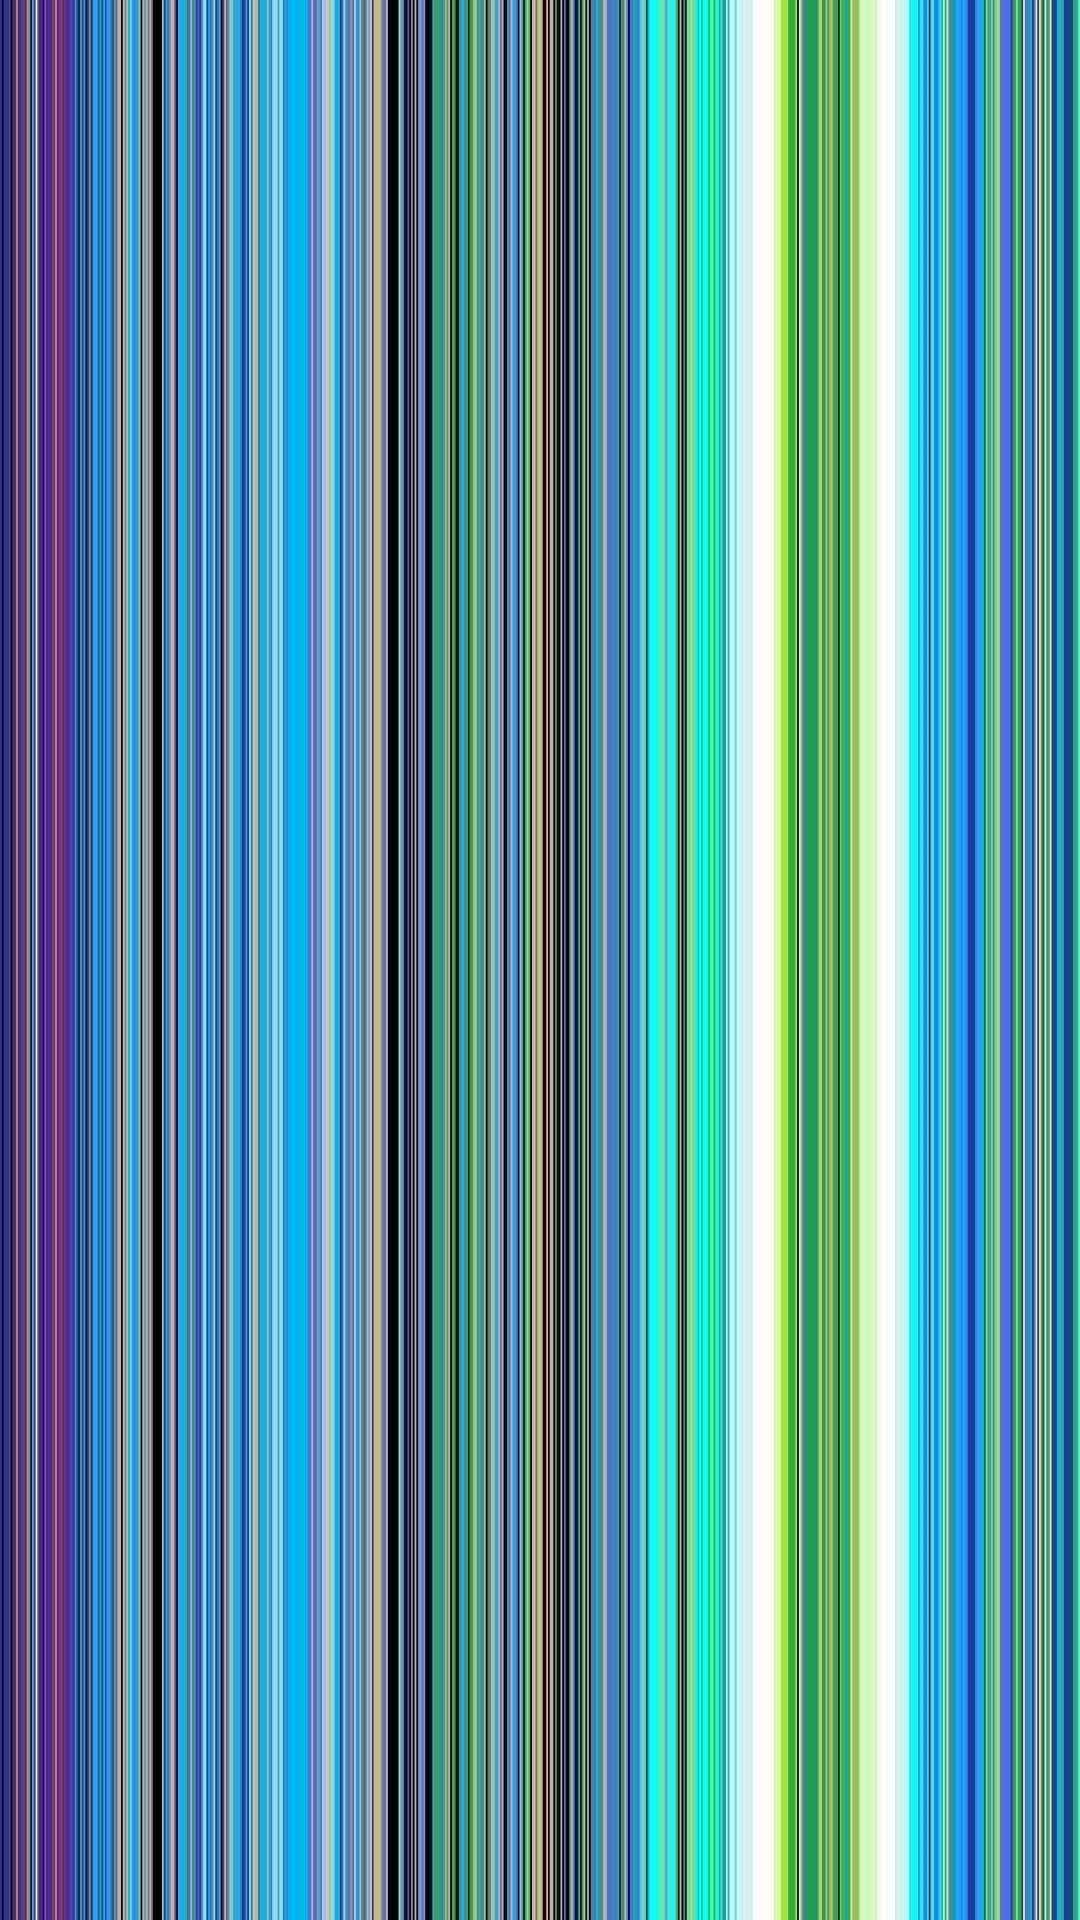 Download Wallpaper 1080x1920 lines stripes vertical multi colored 1080x1920